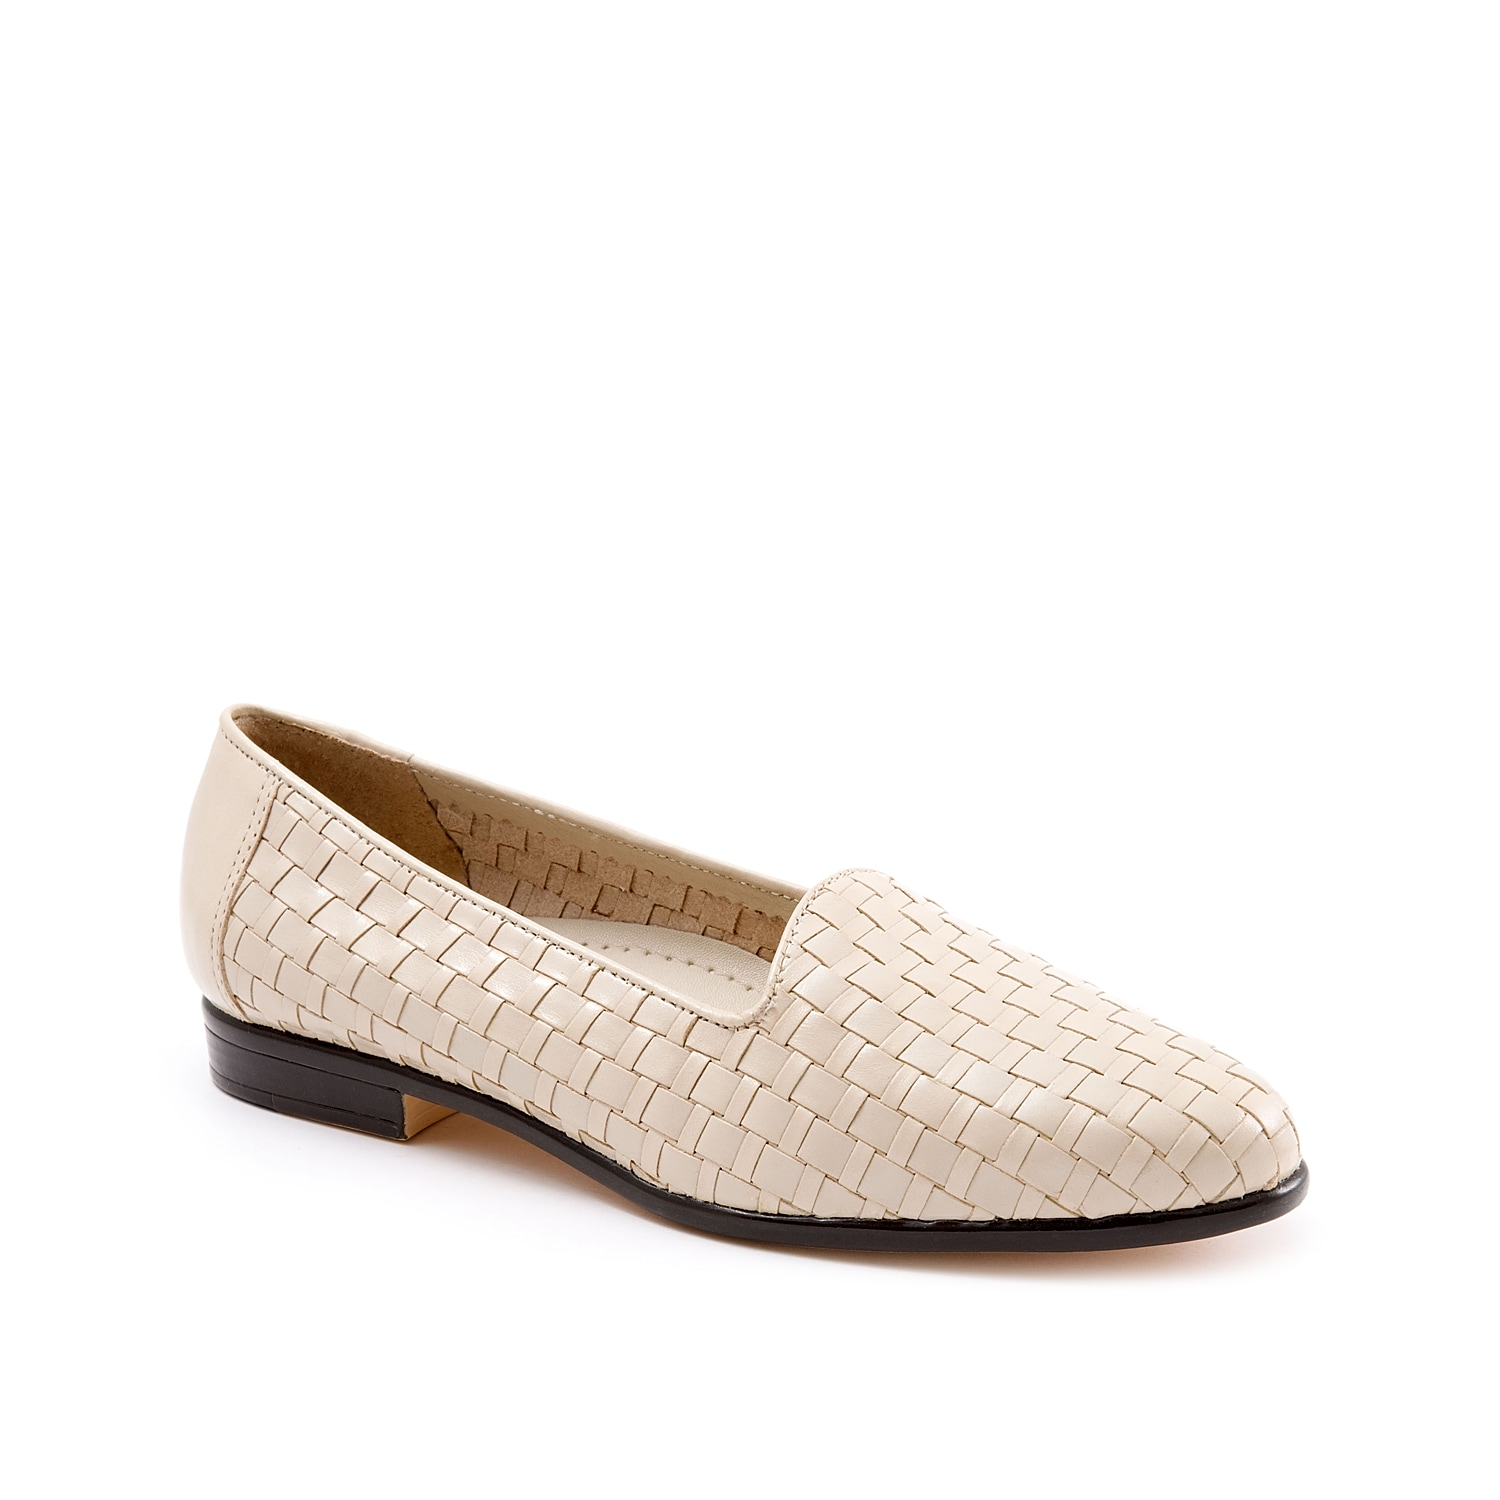 Slip on the Liz loafer from Trotters for a sophisticated yet trendy addition to your wardrobe. A woven leather upper adds interest to a timeless design for a style that will pair with any of your tailored looks!